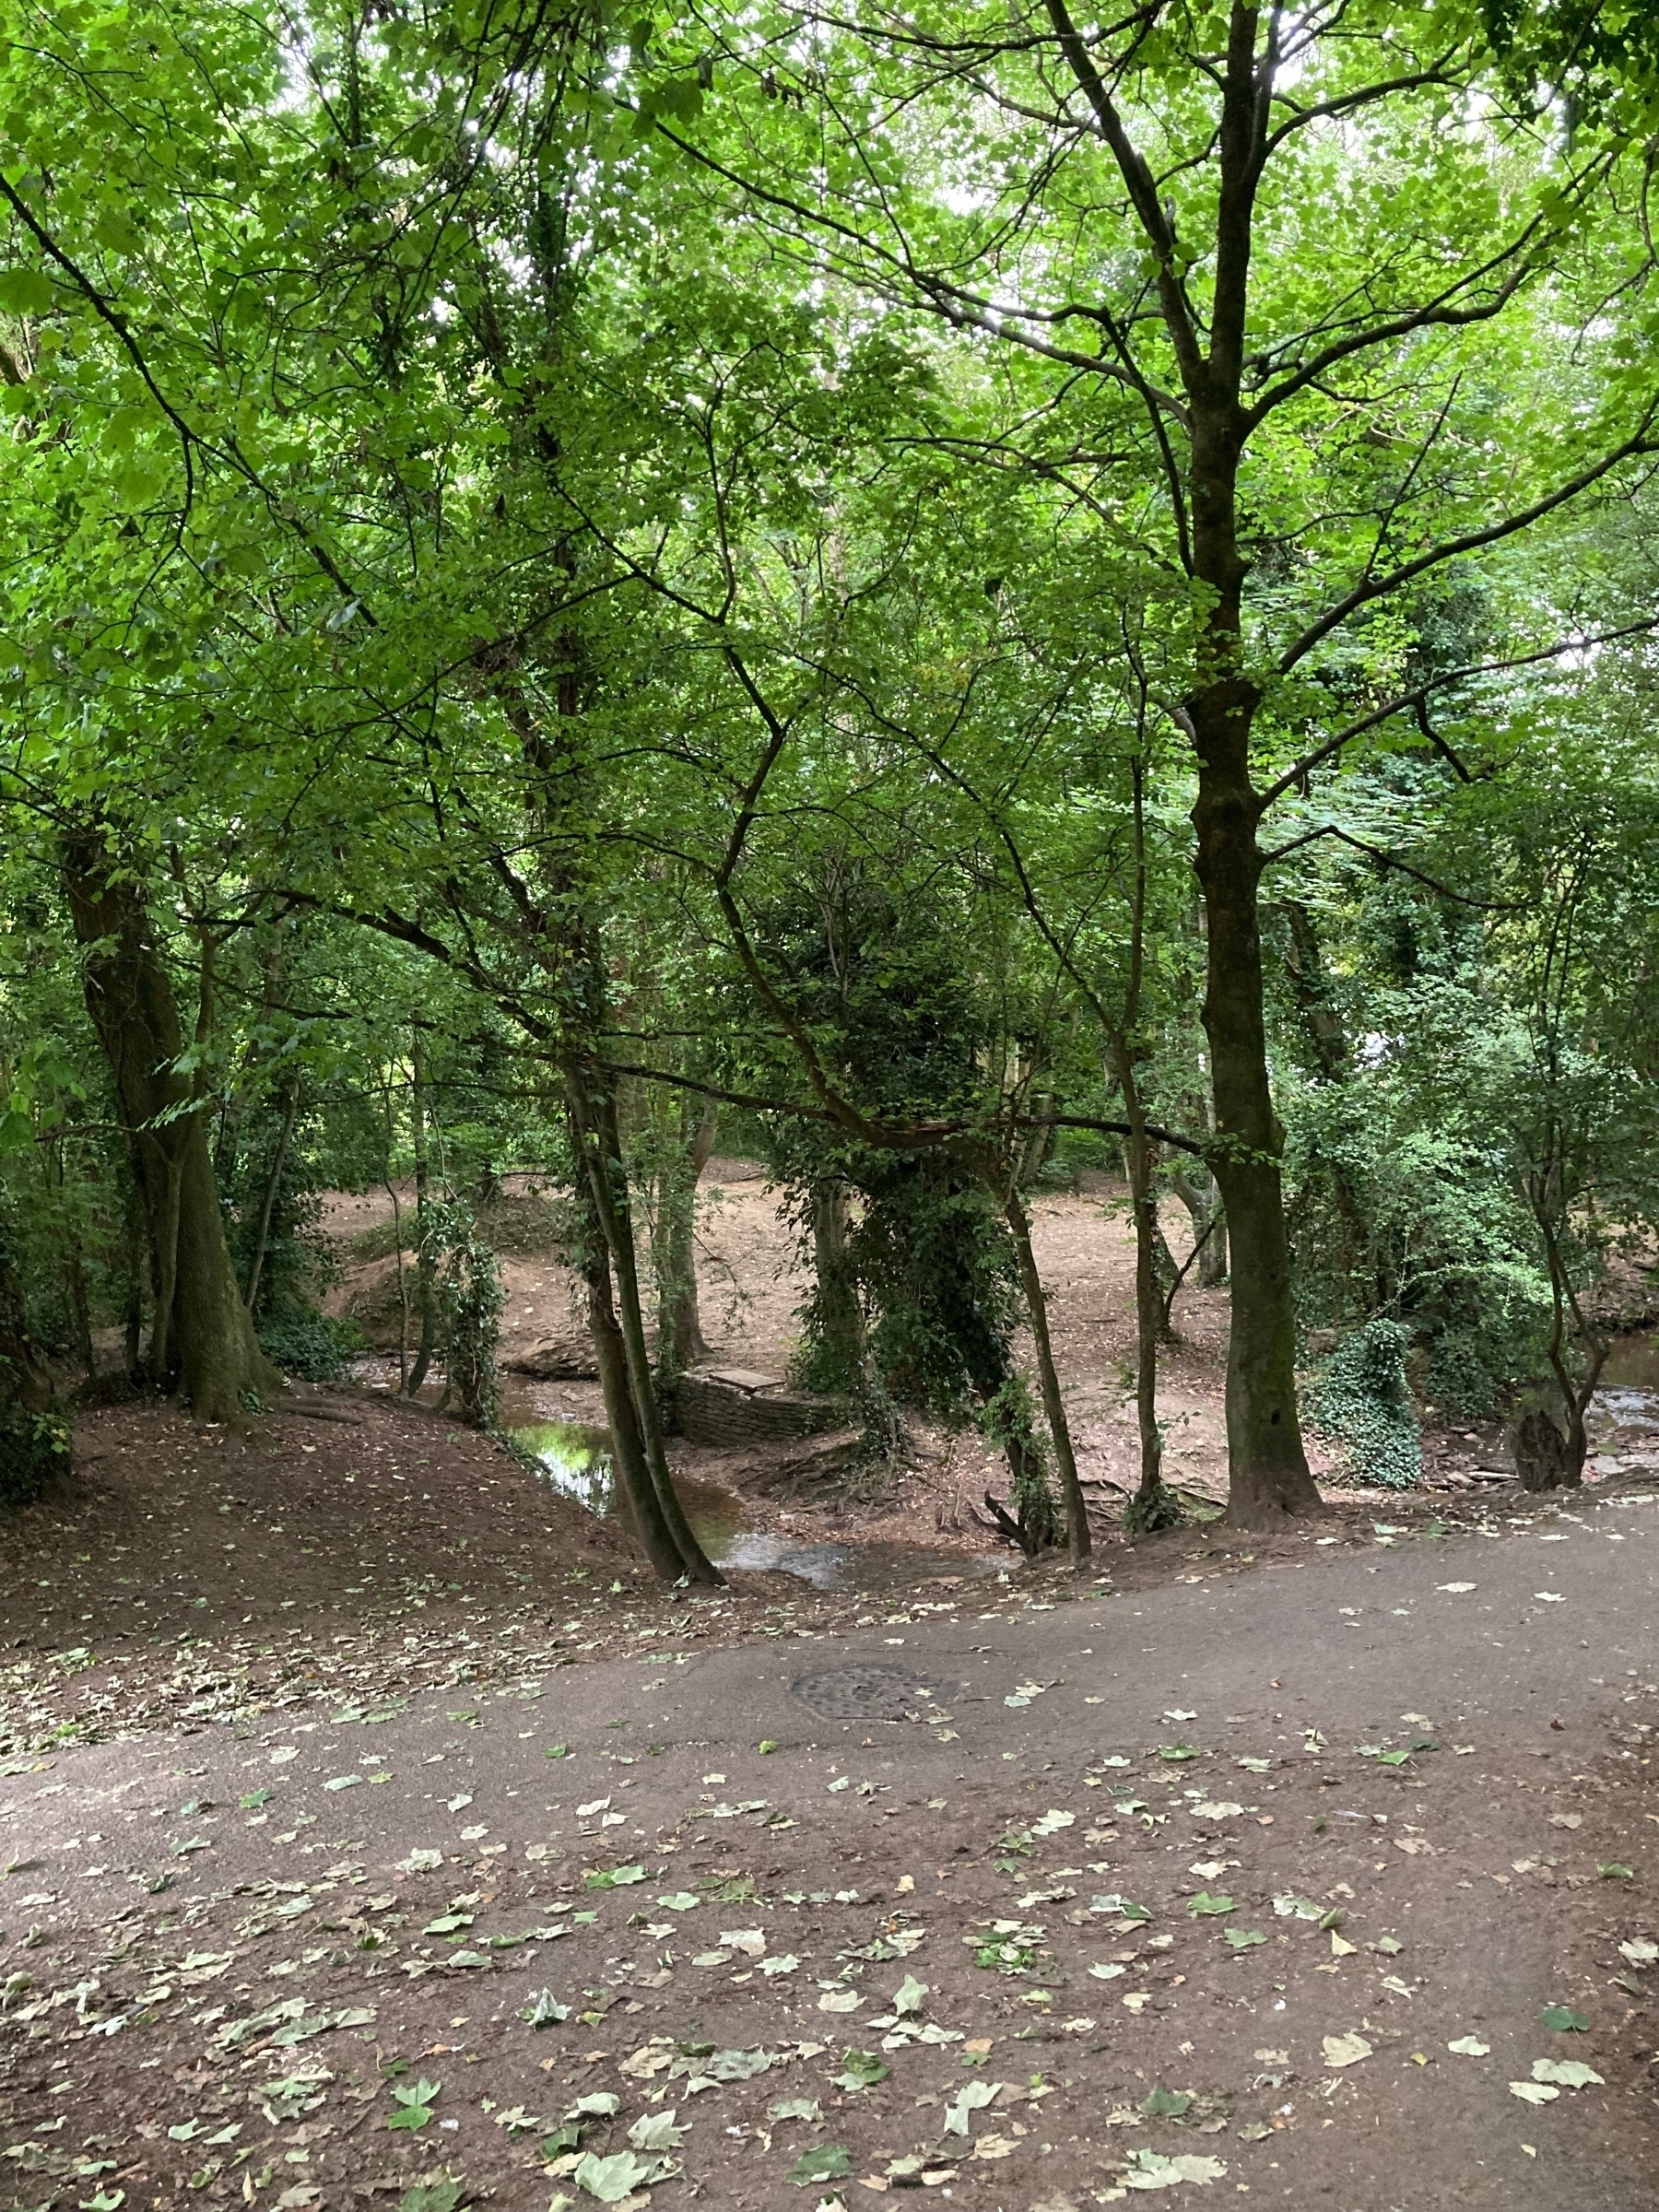 A wooded area, with a stream and natural footpaths.